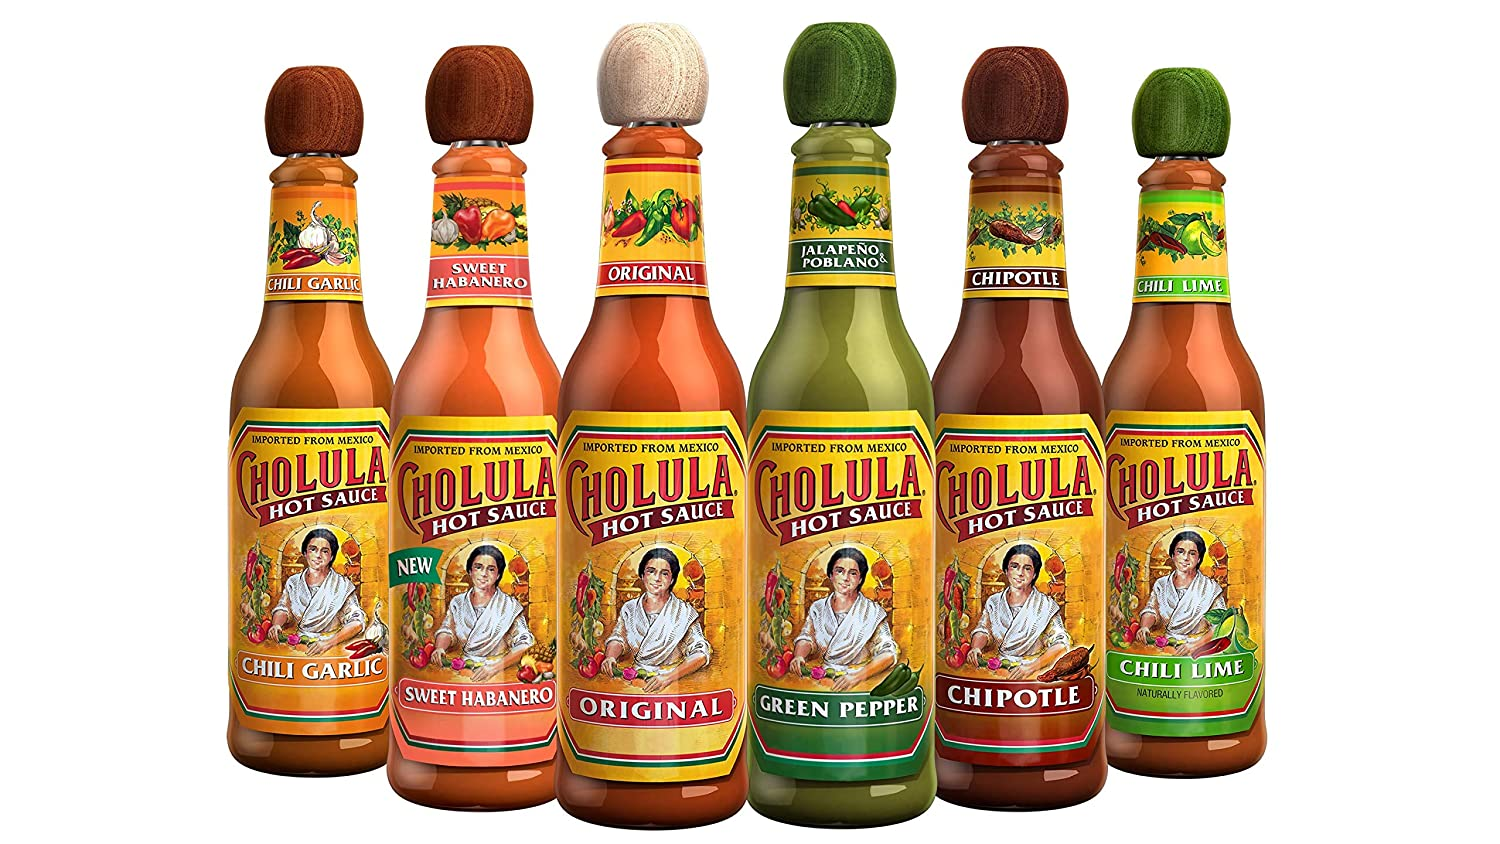 Cholula Hot Sauce Variety Pack | 6 Pack 5oz Bottles | Original, Green Pepper, Chipotle, Chili Garlic, Chili Lime and Sweet Habanero | Crafted with Mexican Peppers and Signature Spice Blend | Great Hot Sauce Lover Gift Set | Gluten Free, Kosher, Vegan, Low Sodium, Sugar Free | Best Thing to Ever Happen to Food | Perfect Balance of Flavor and Heat